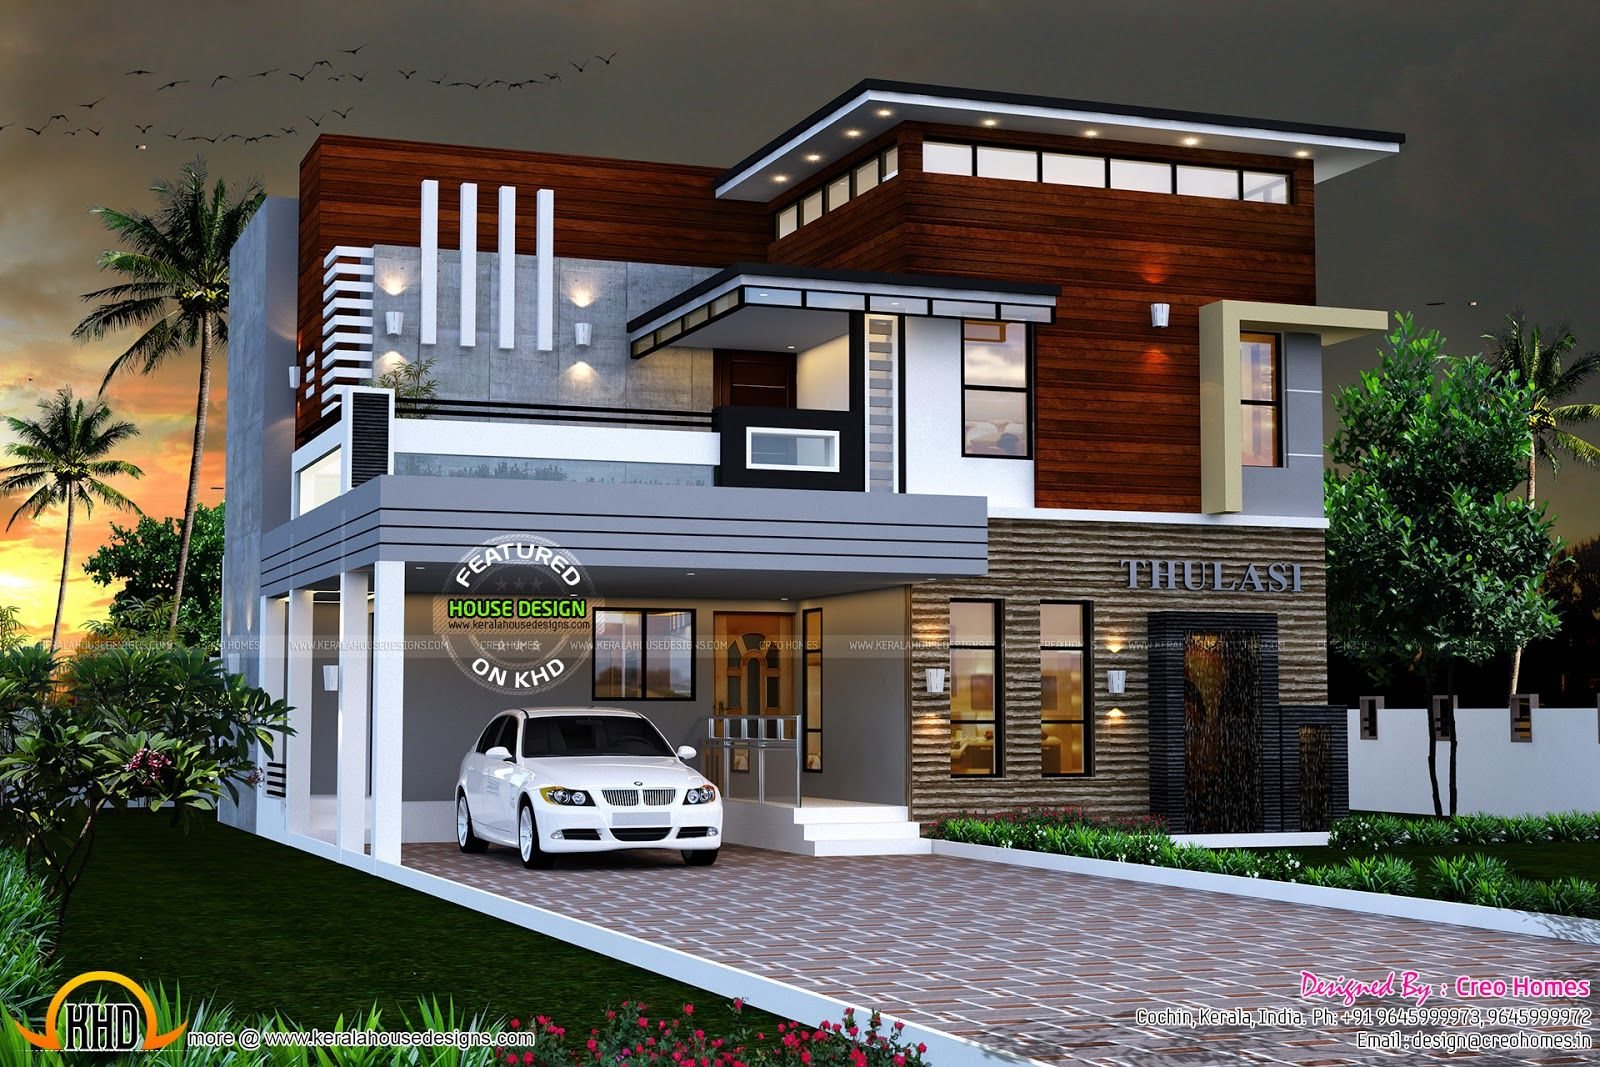 Eterior design modern small house architecture building Indian house structure design